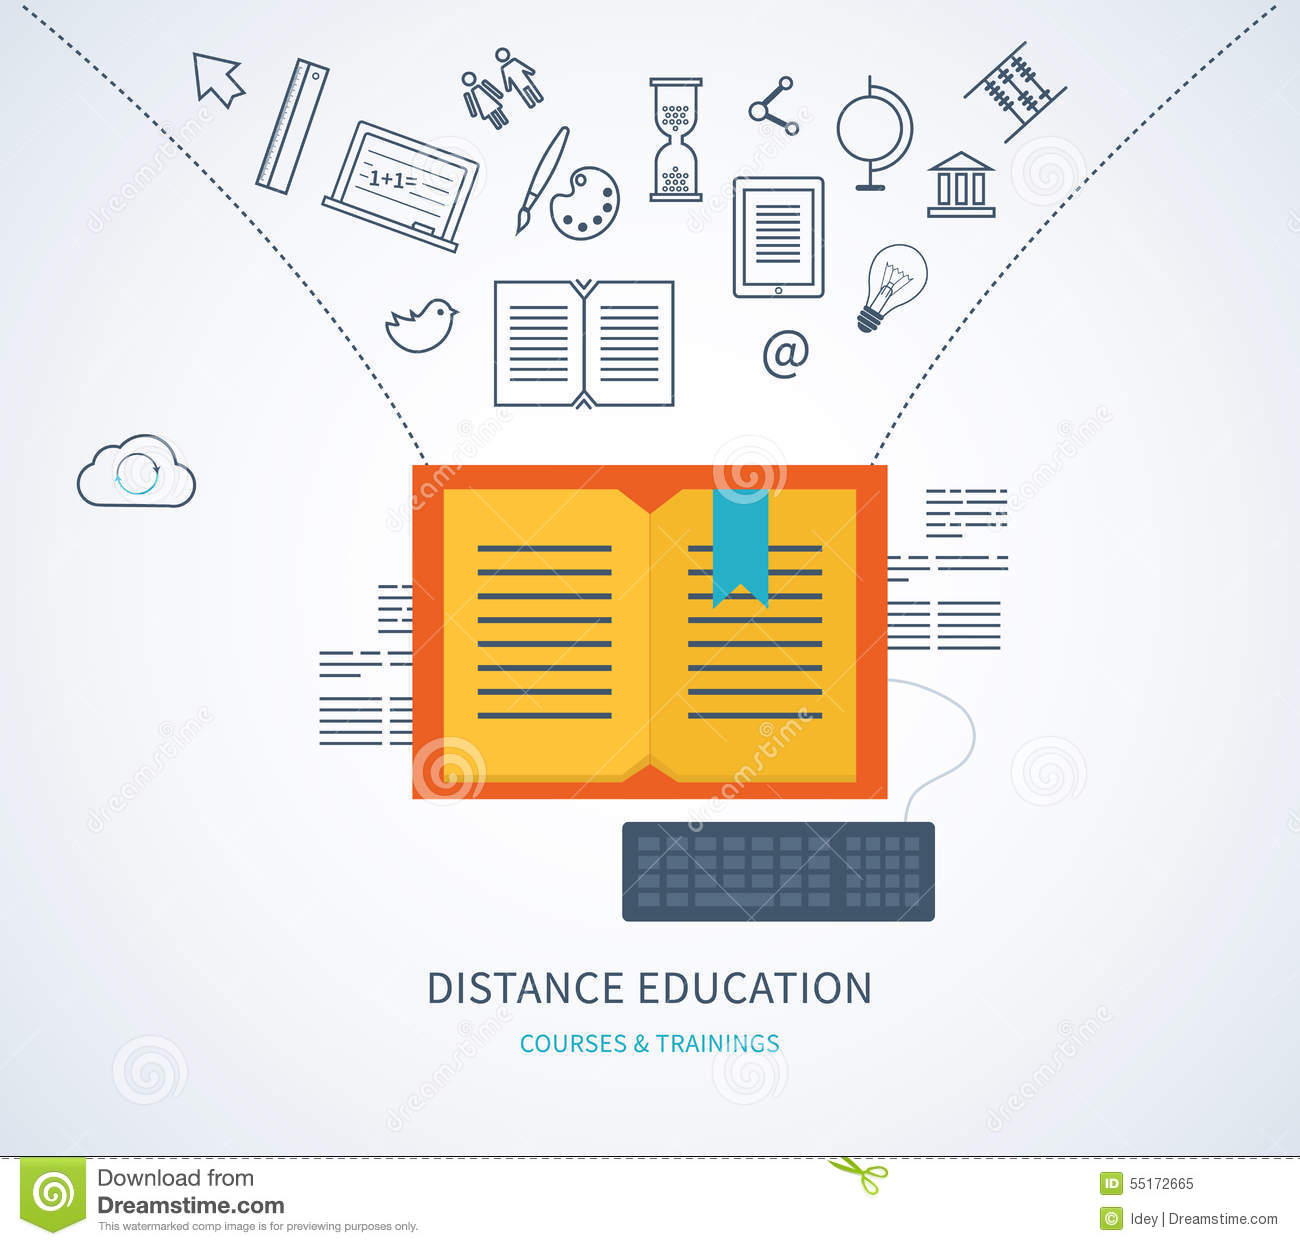 online education programs Award winning program for after school and summer study watch your kids build reading, math and study skills online over 3,000 activities | 14 day free trial.